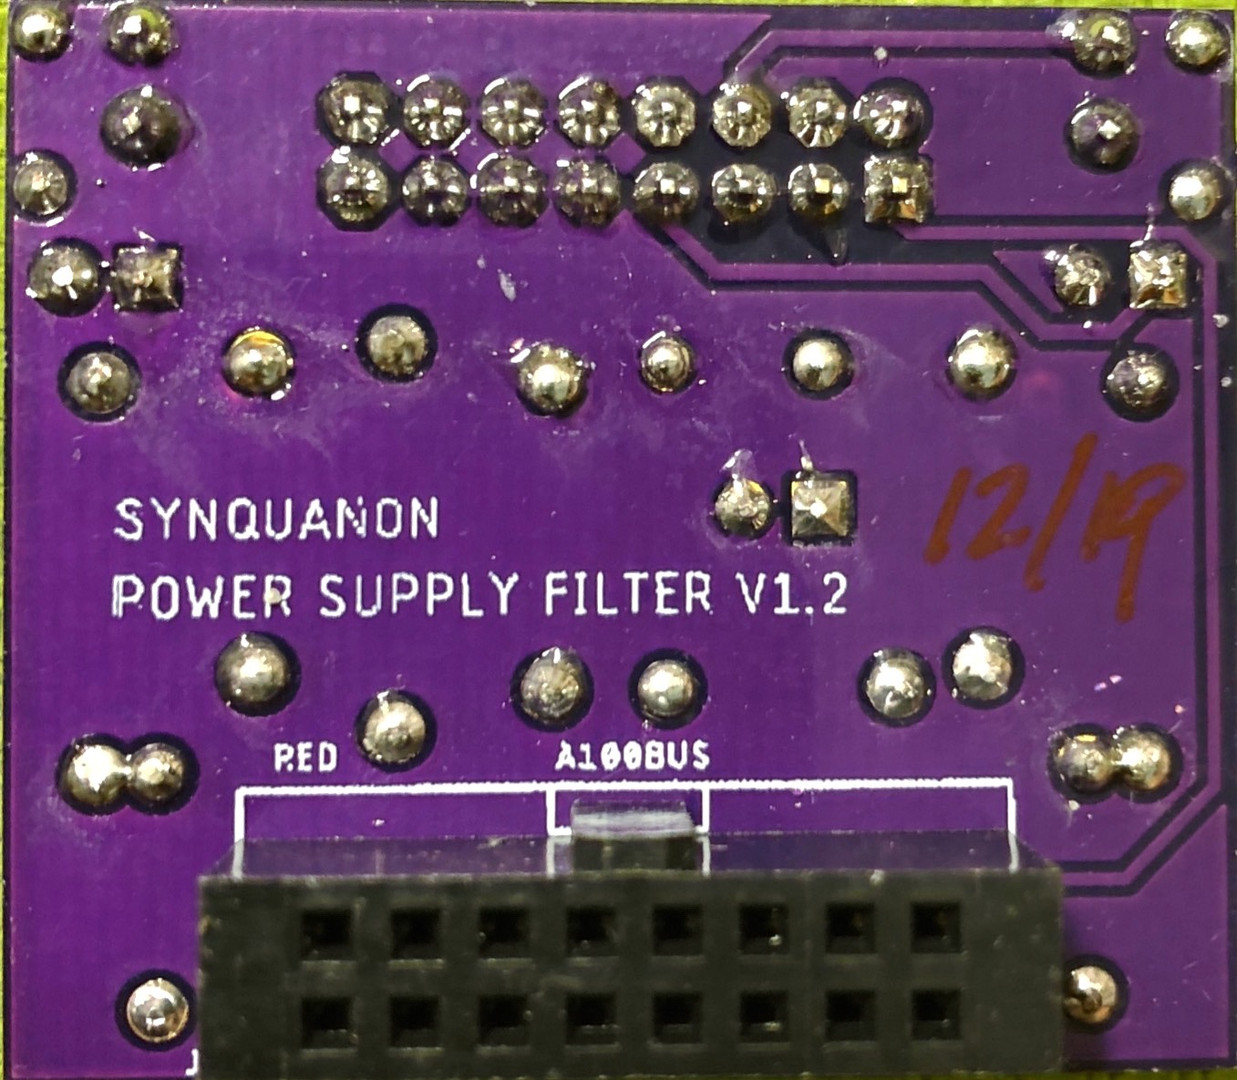 Power Supply Filter Purple Bottom.jpg